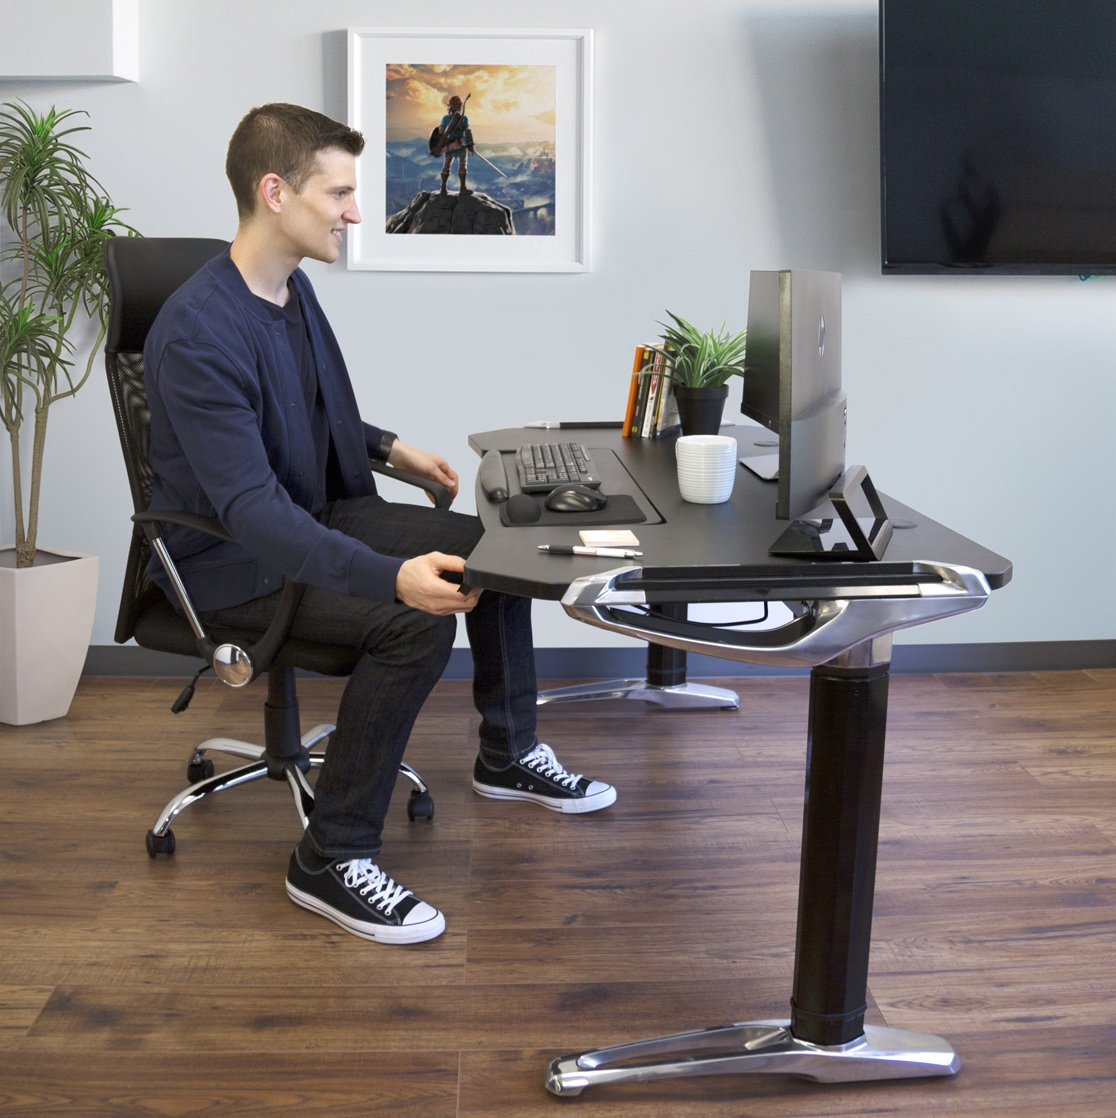 Tranzendesk Standing Desk Black Top//Silver Frame Easily Crank from Sitting to Standing 55 inch Long